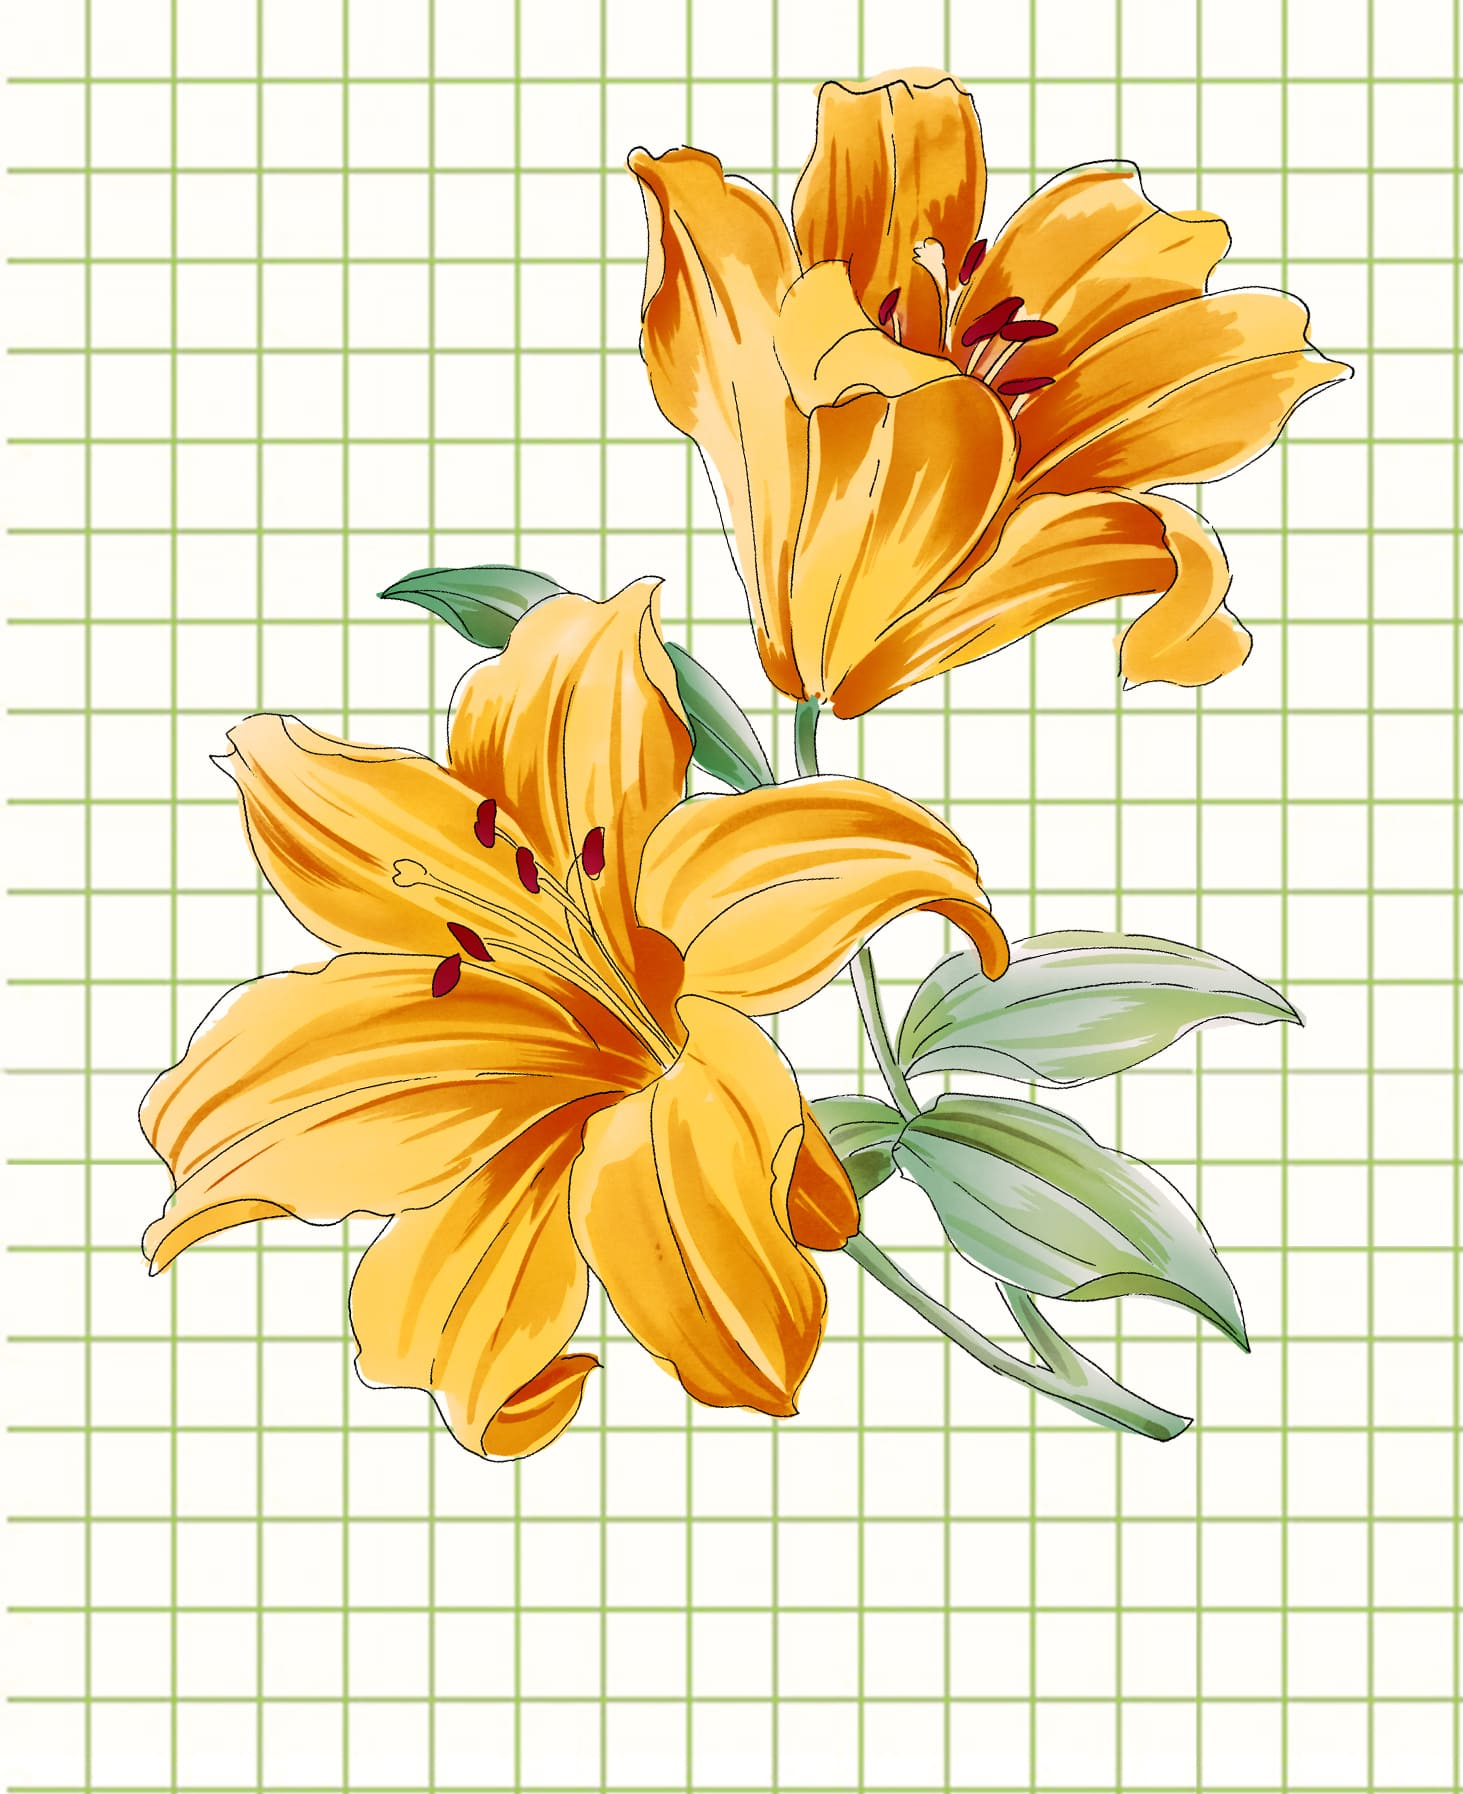 flowers-drawing-image-94